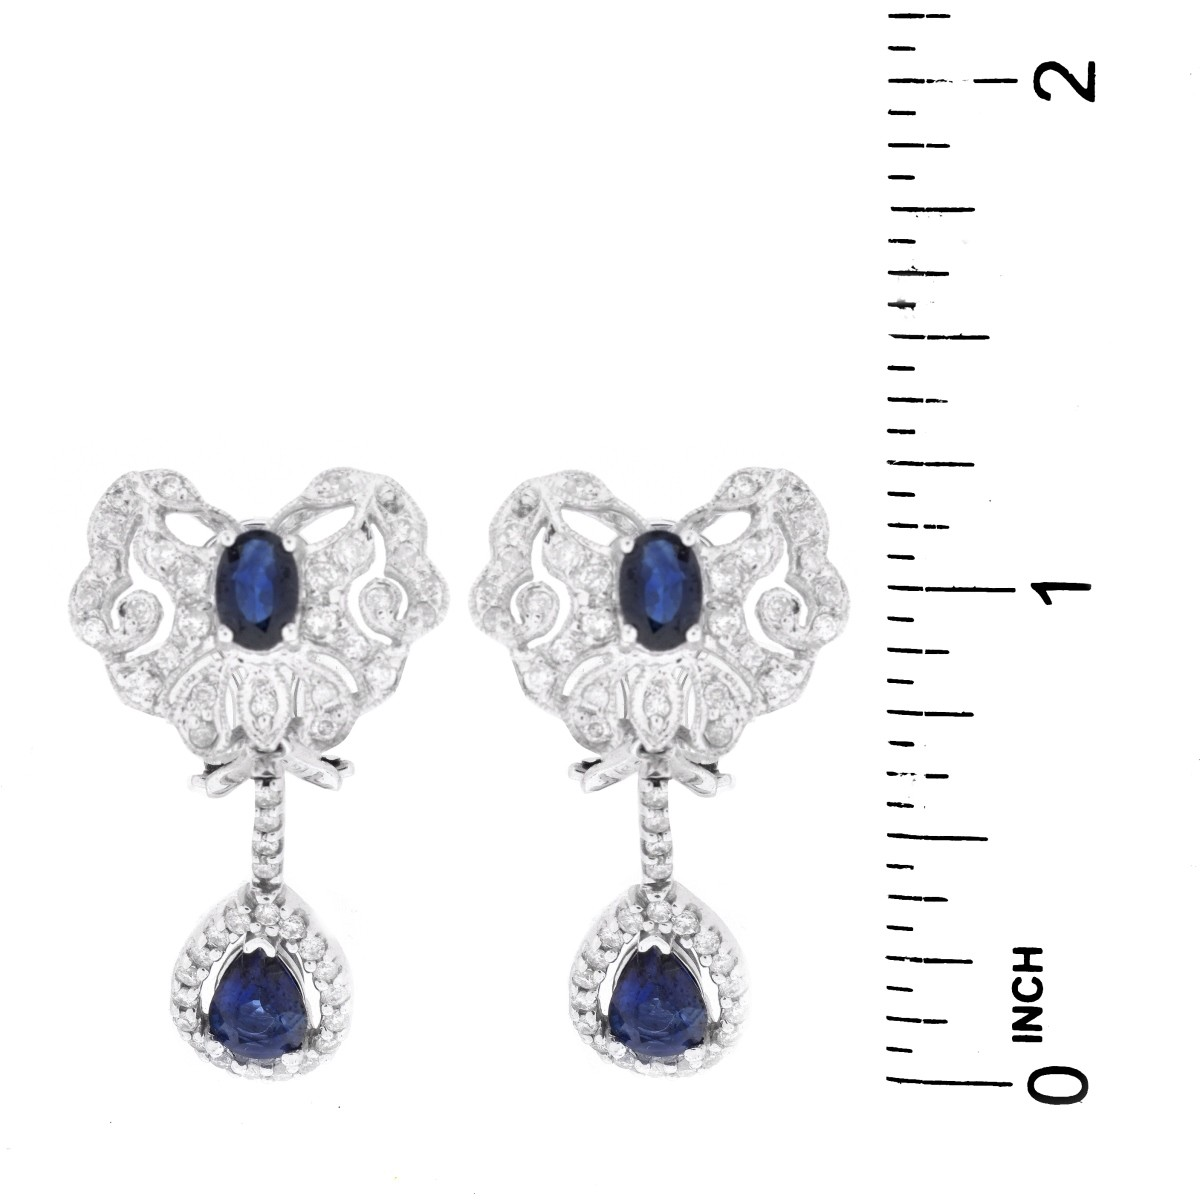 Sapphire, Diamond and 14K Gold Earrings